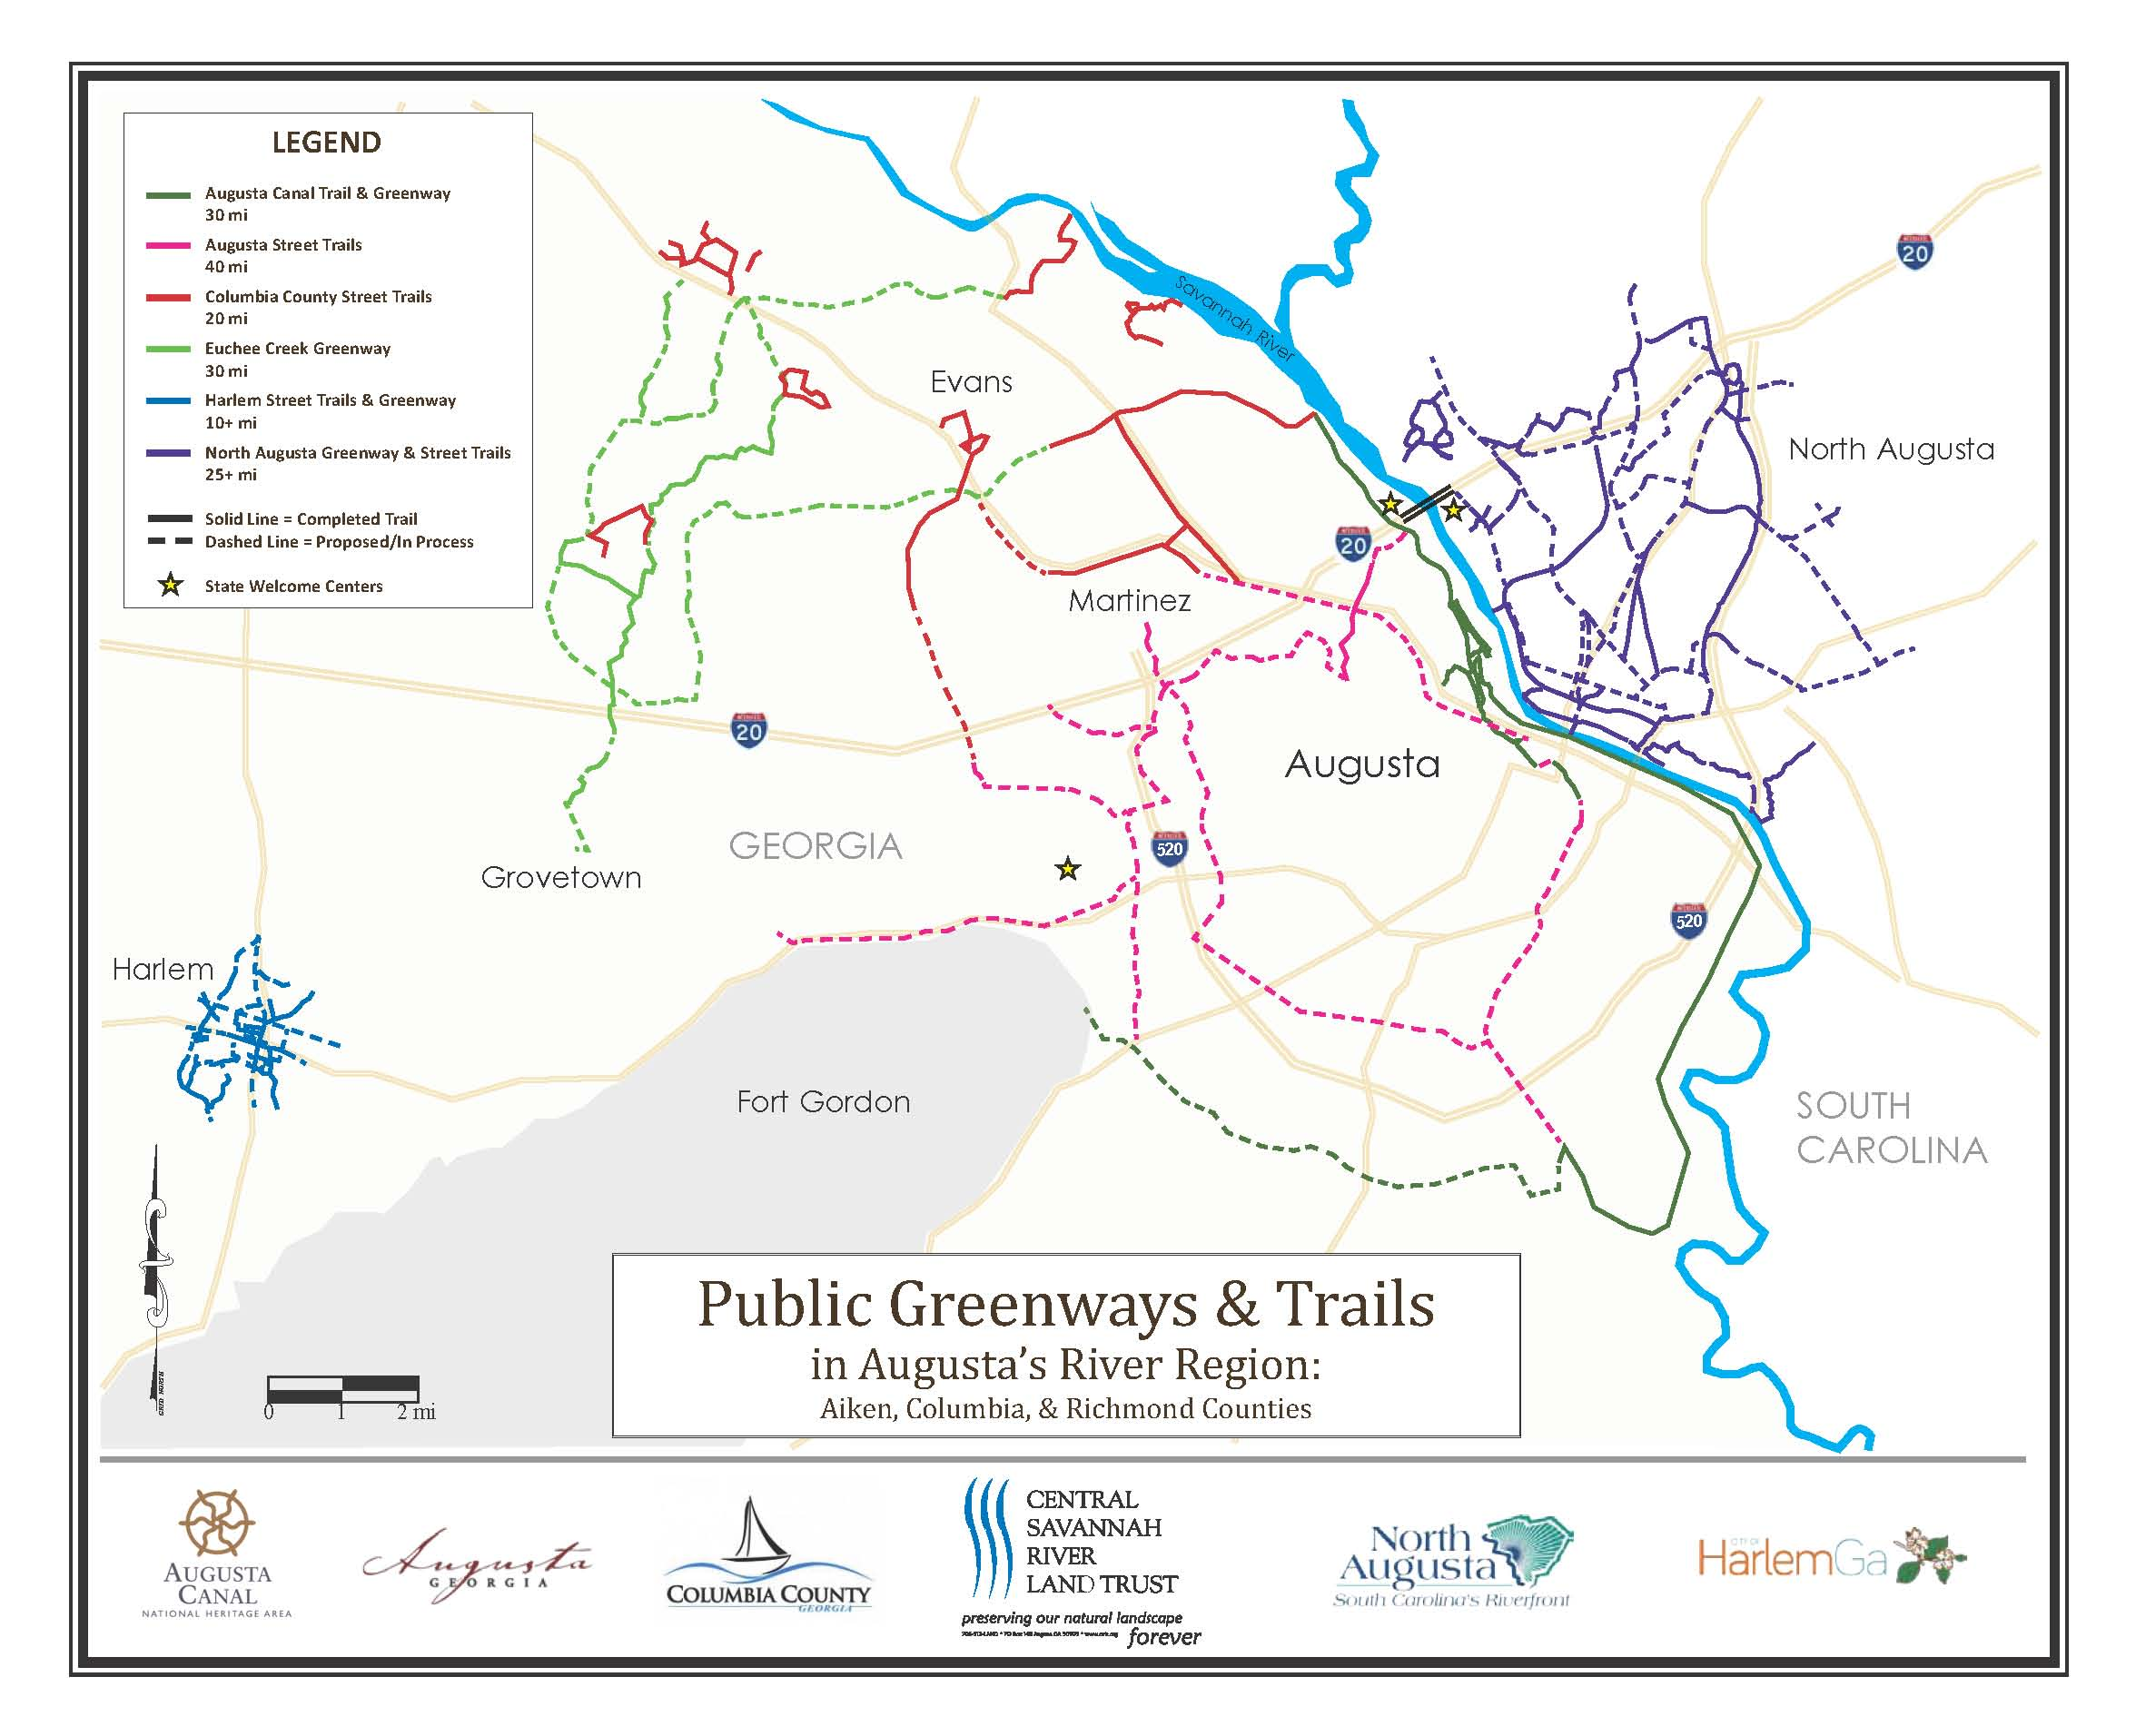 Savannah River Greenway | The Central Savannah River Land Trust on columbia river on us map, susquehanna river on a us map, platte river on a us map, james river on a us map, tennessee river on a us map, potomac river on a us map, arkansas river on a us map, missouri river on a us map, savannah river site map, delaware river on a us map, sabine river on a us map, red river on us map, minnesota river on a us map, hudson river on a us map, rappahannock river on a us map, willamette river on a us map, sacramento river on a us map, mississippi river on a us map, cumberland river on a us map, suwannee river on a us map,